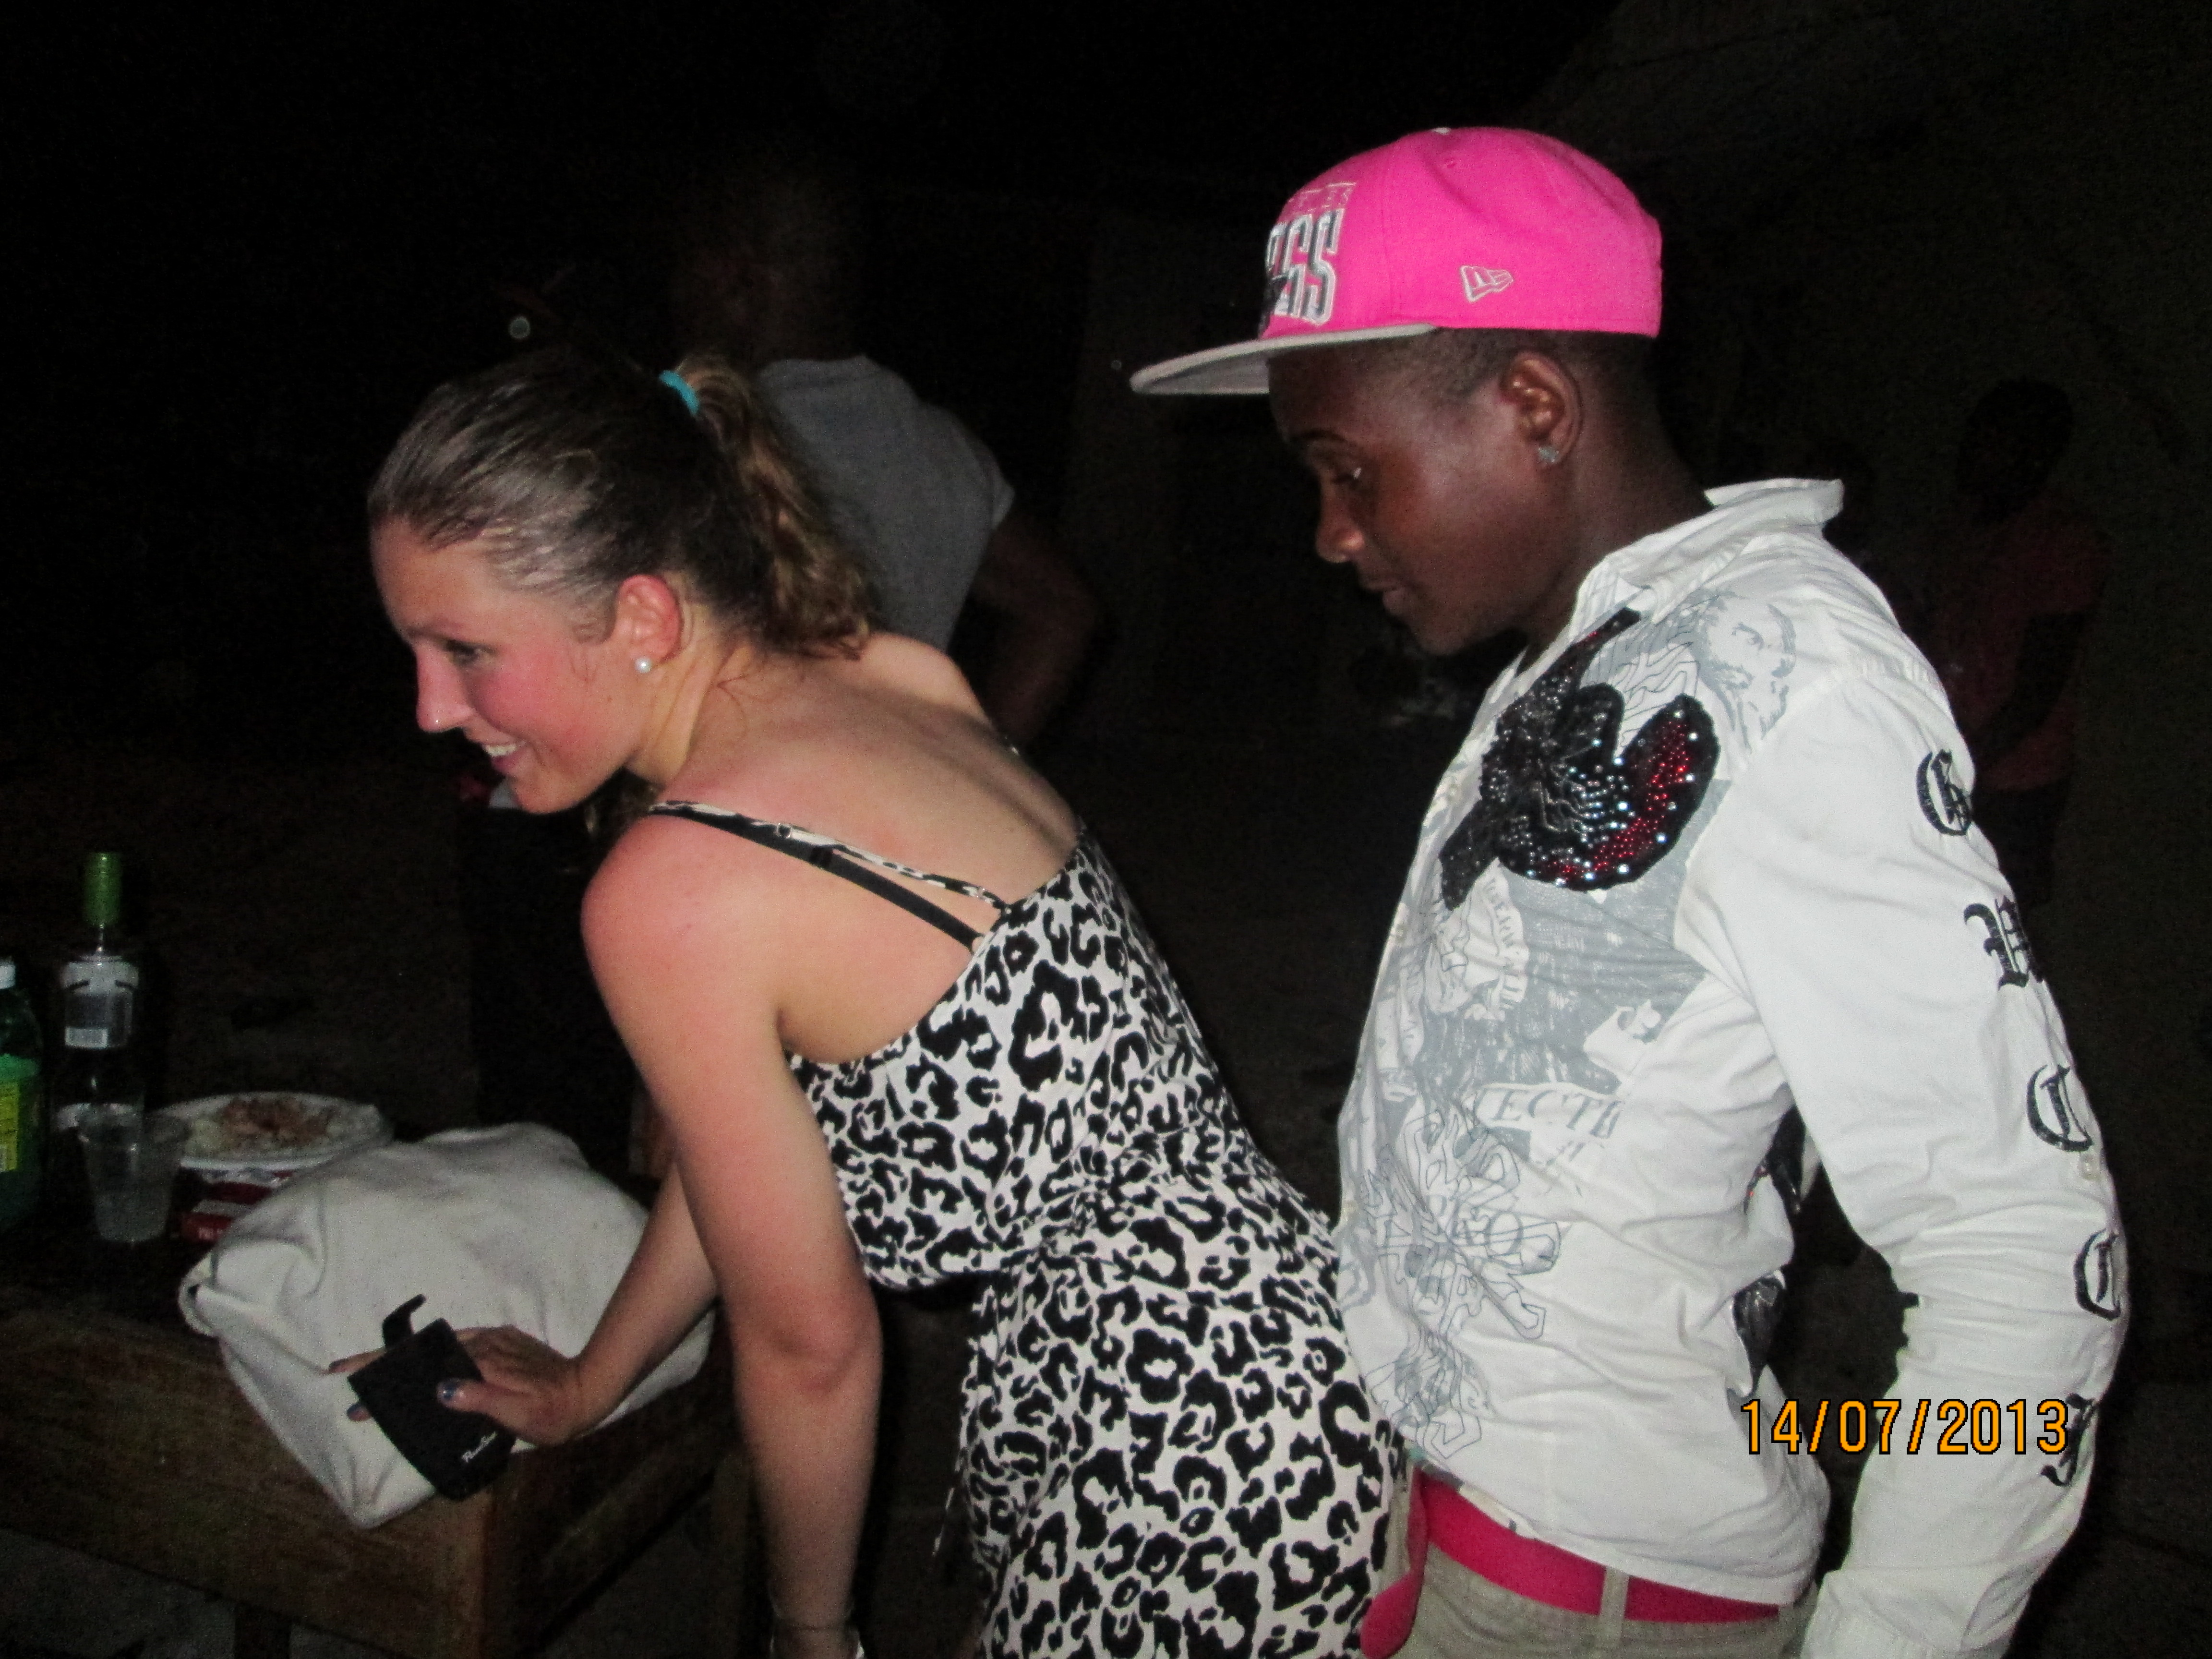 Nightlife in rural Jamaica – Travel With Zoe